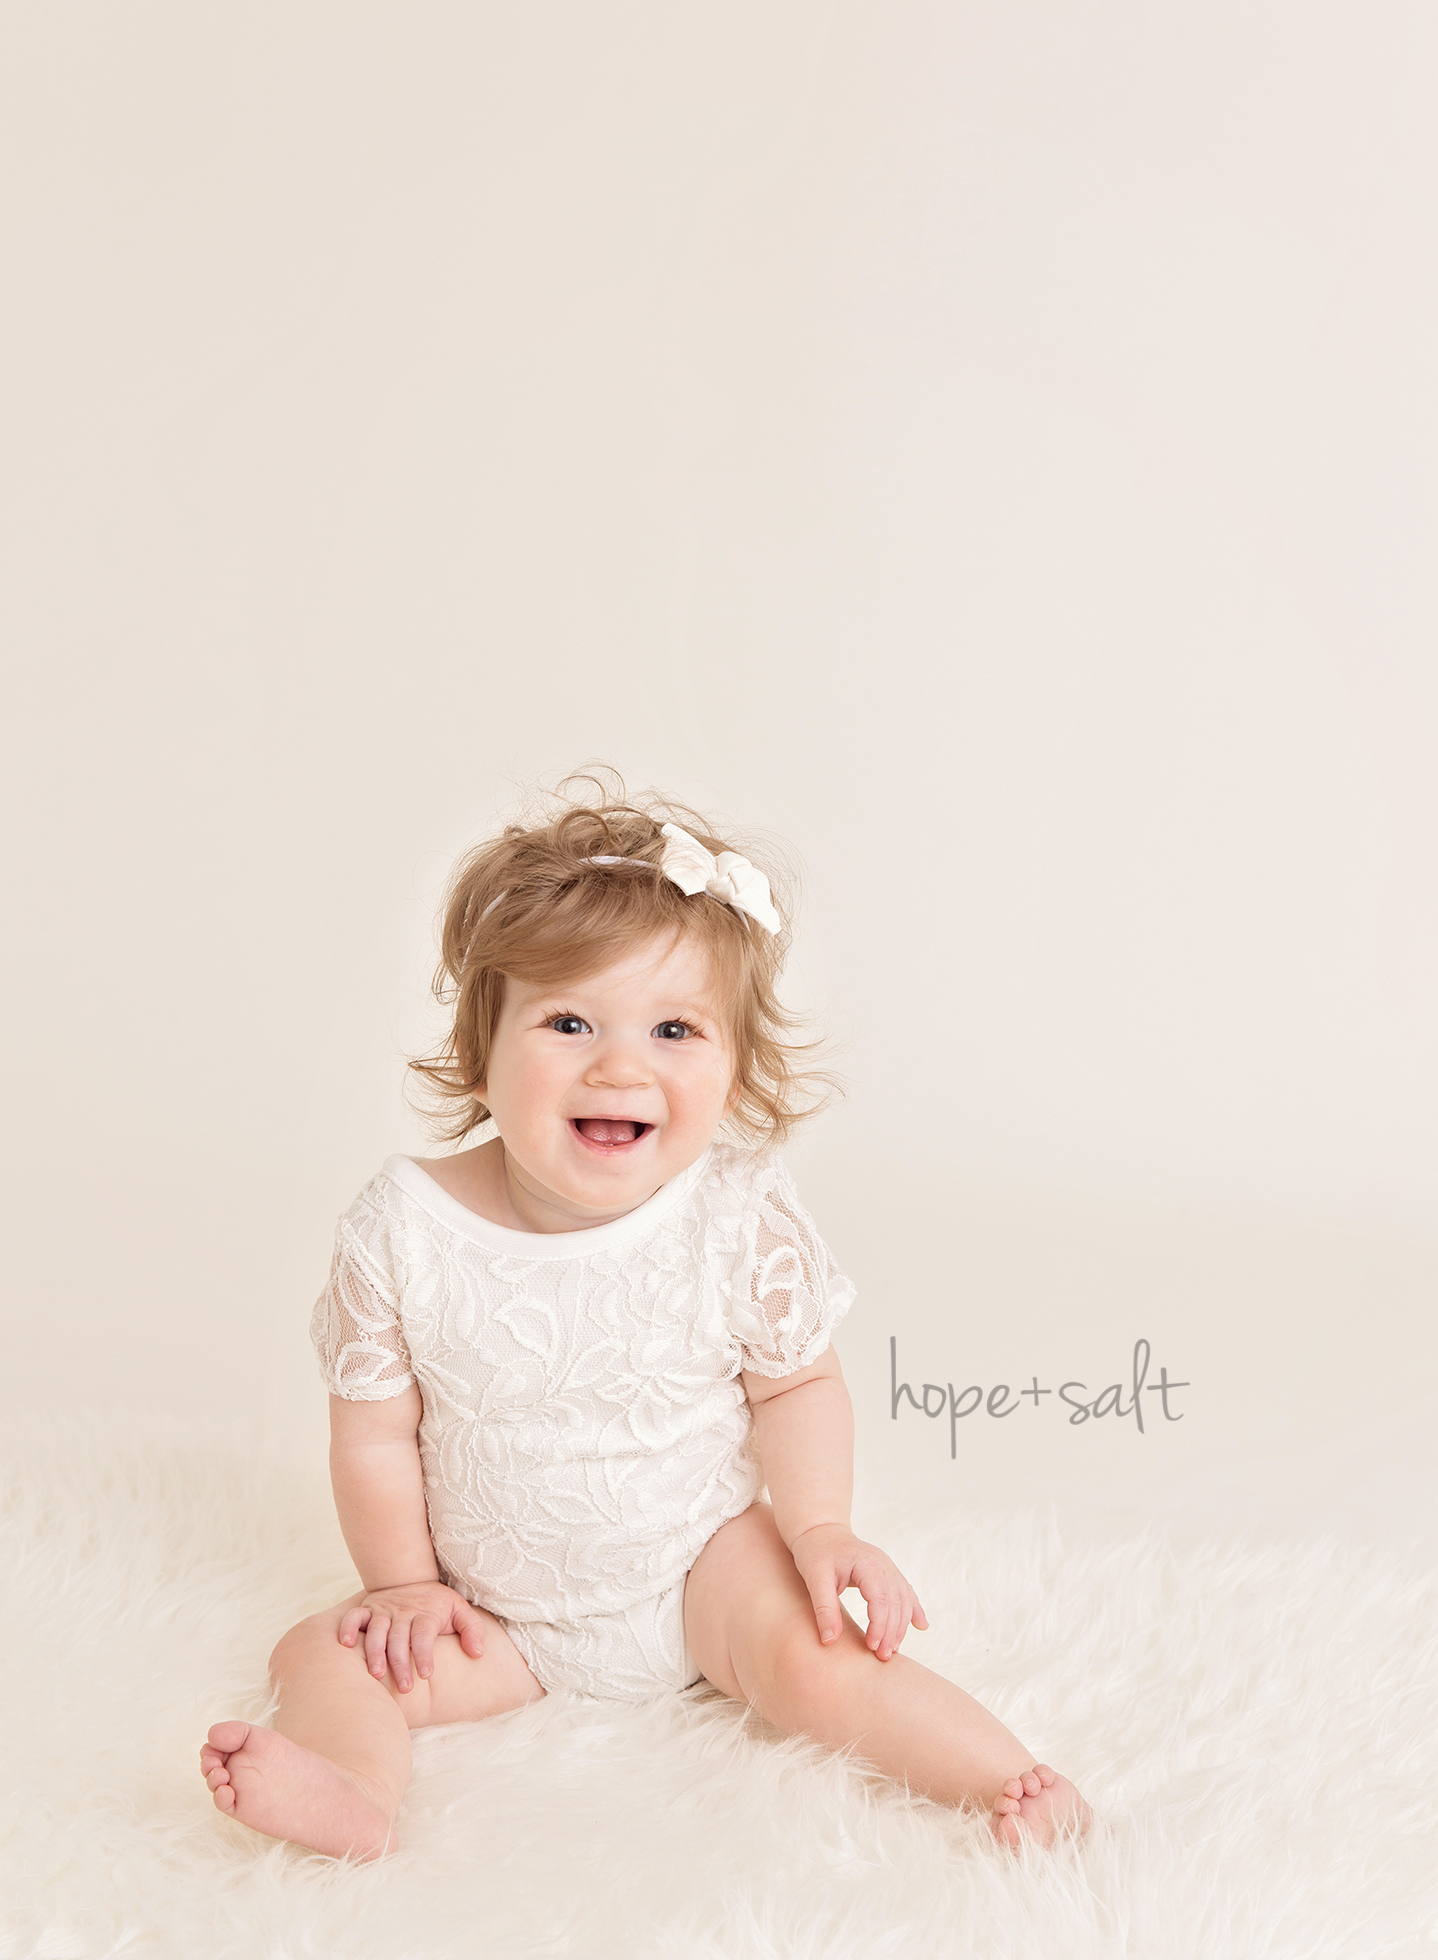 A first birthday sitter session for one year old girl Audrey Oakville Baby Photographer, neutral white, simple pure style, Hope + Salt Photography